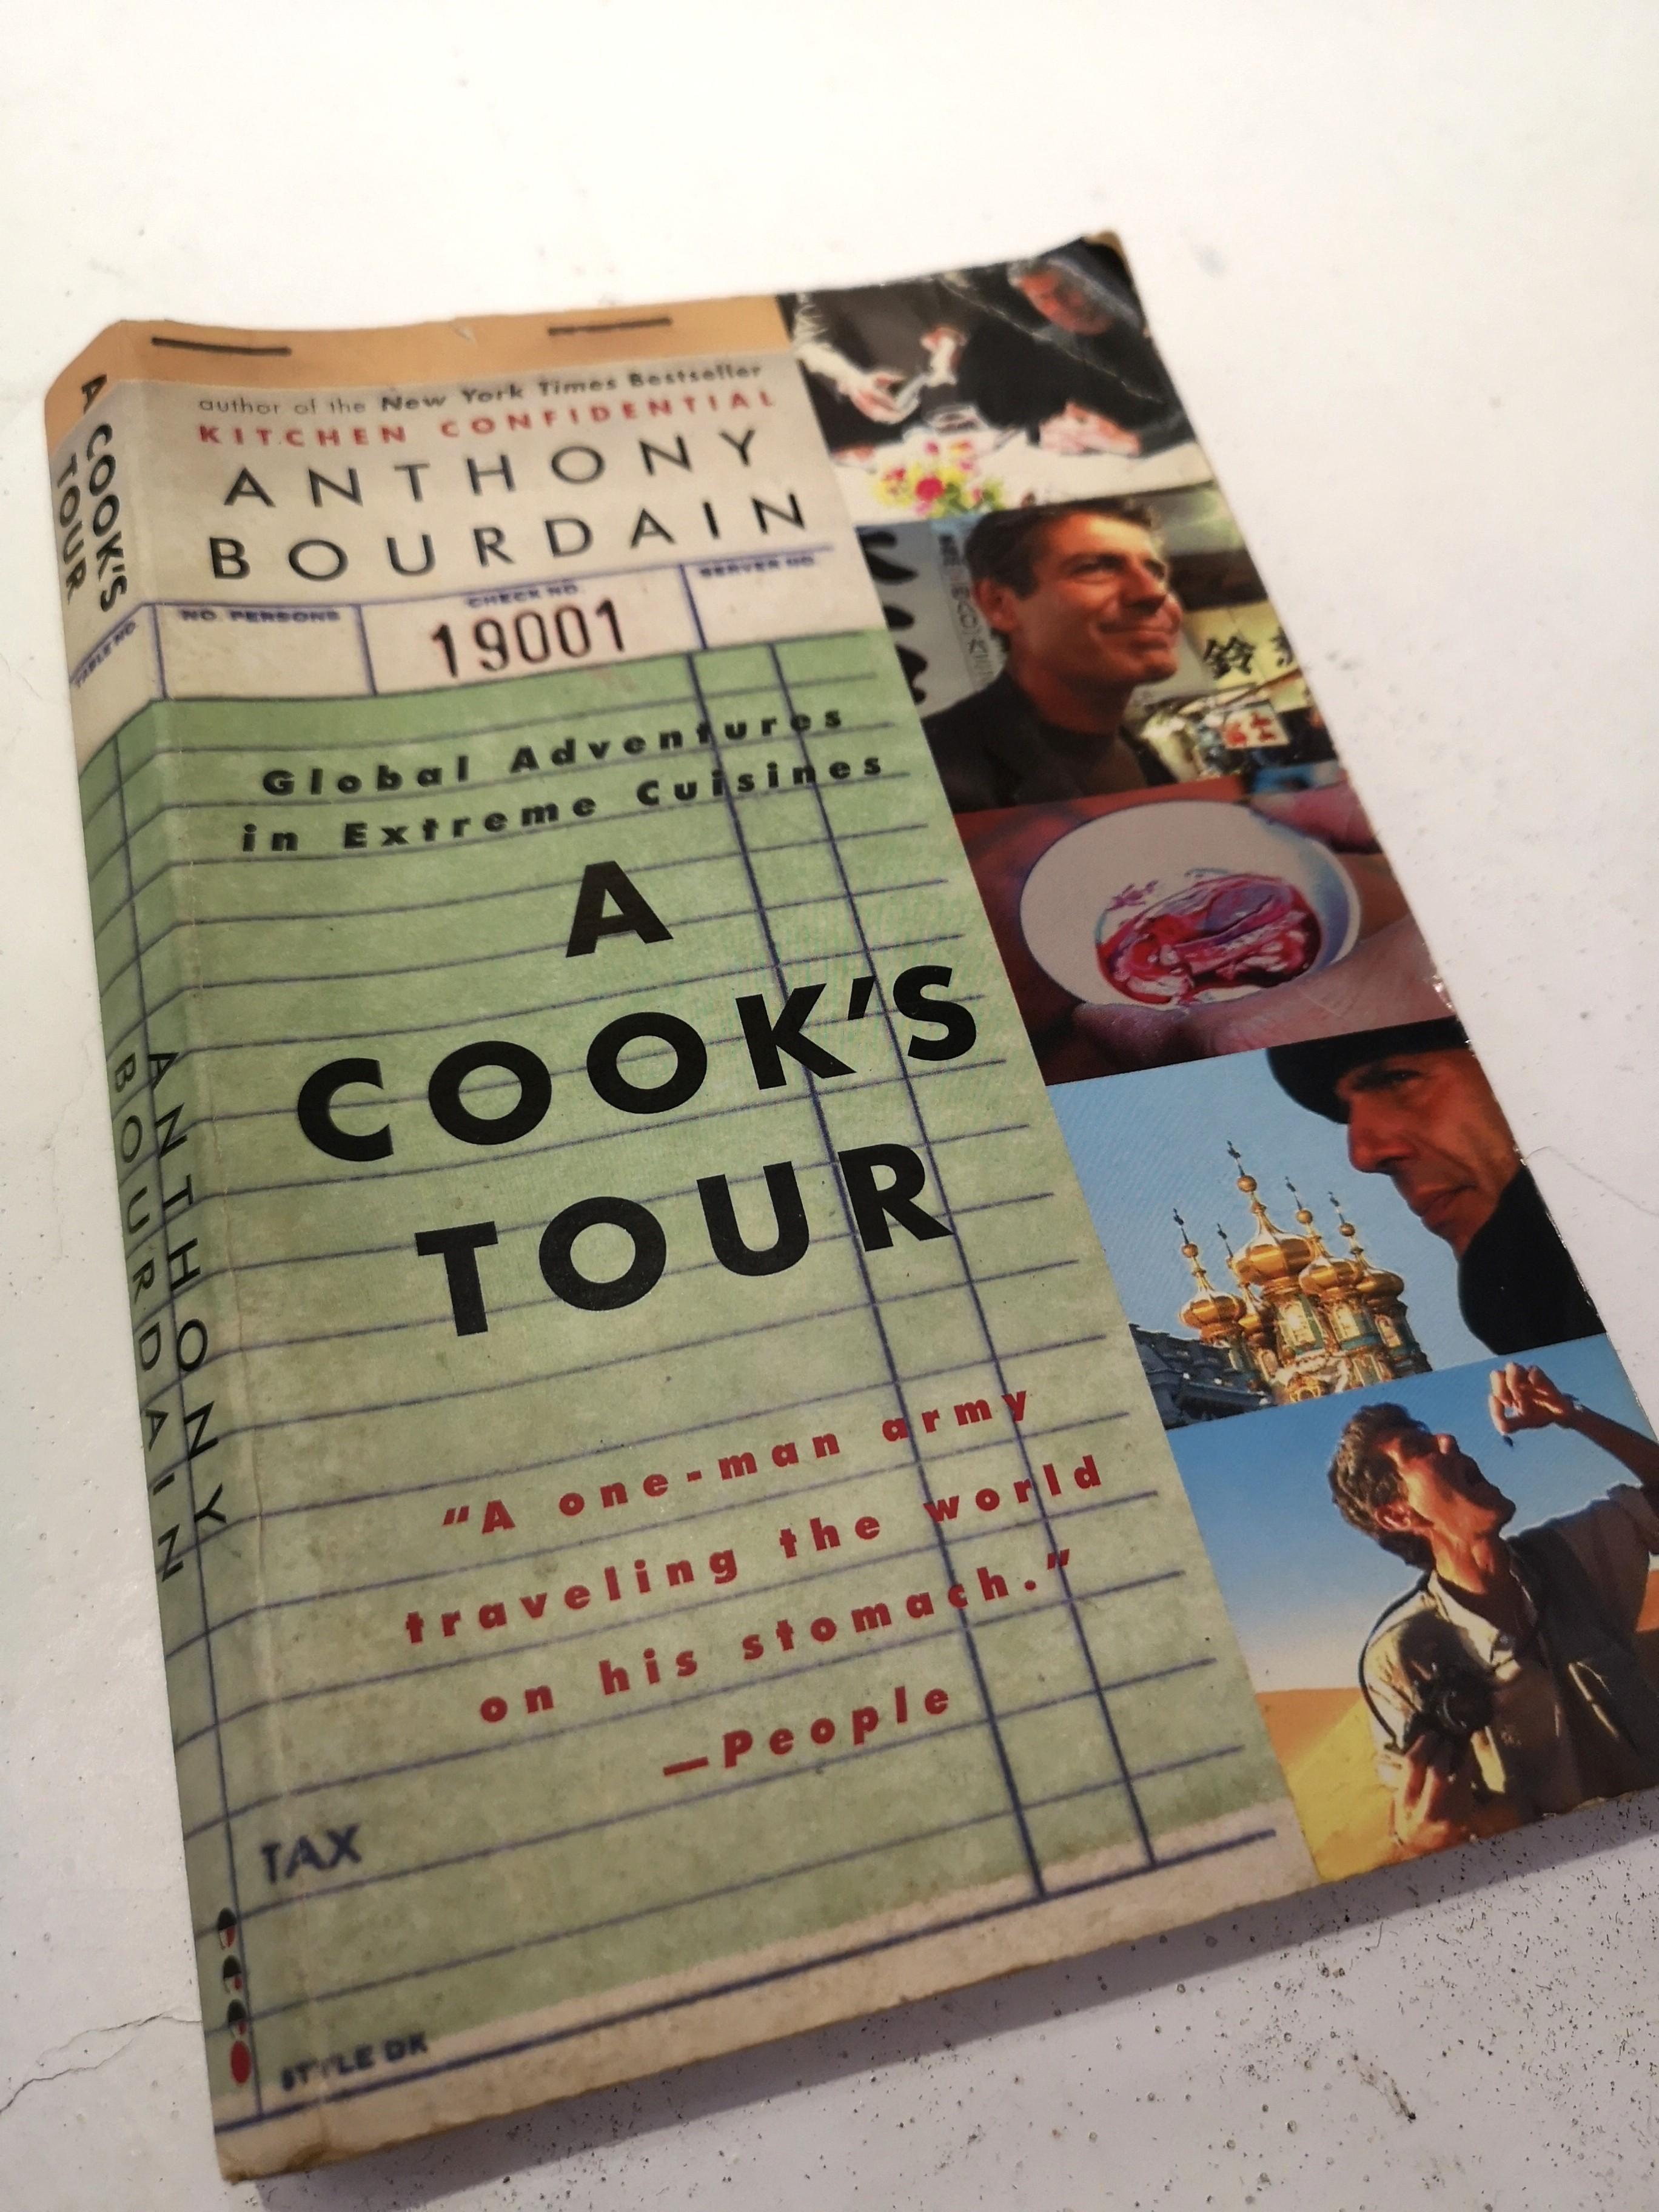 ANTHONY BOURDAIN A Cook's Tour + Around The World In 80 Dinners by Cheryl & Bill Jamison book bundle